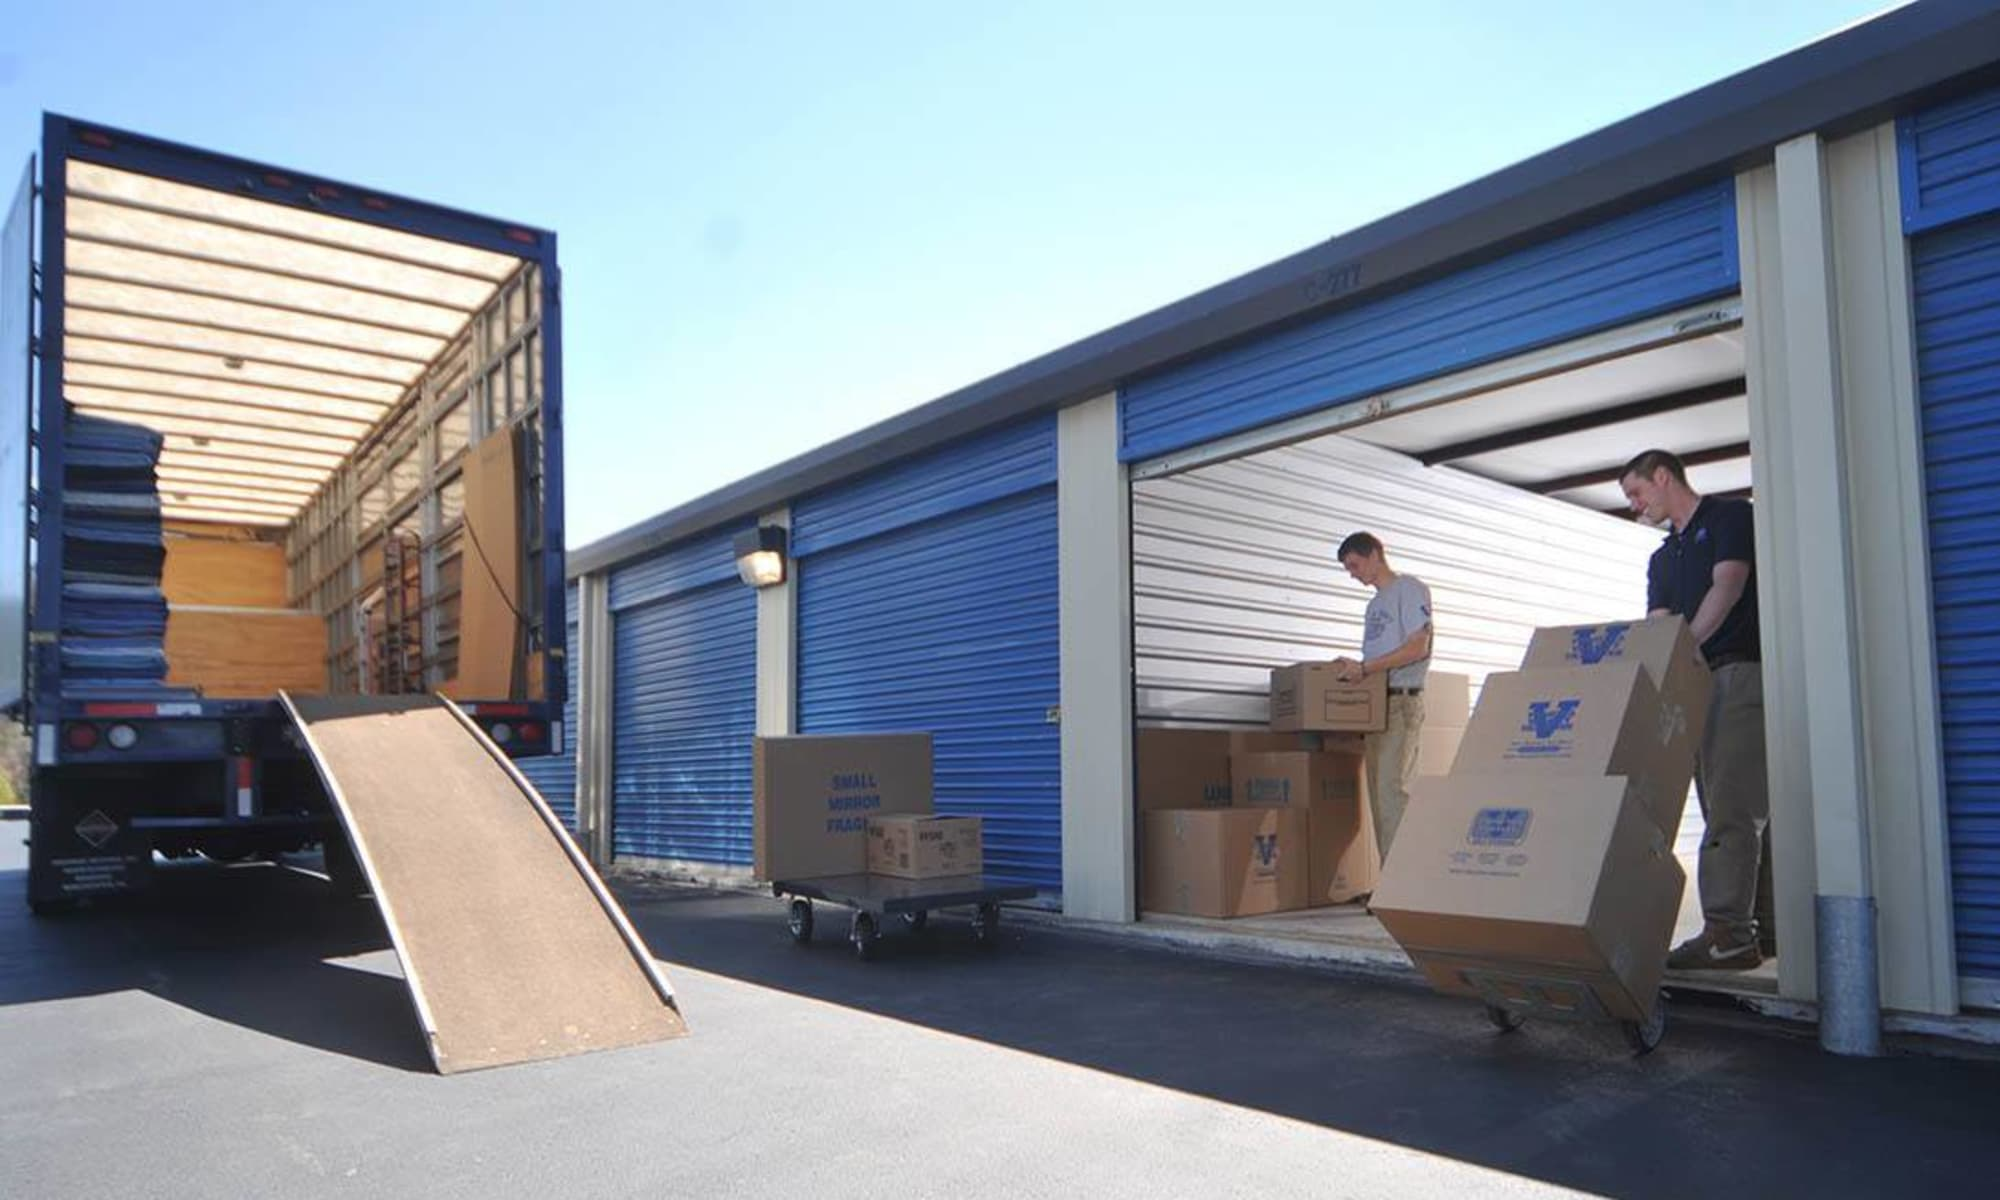 Wide driveways provide enough room for even th biggest loads at Virginia Varsity Storage in Roanoke, Virginia